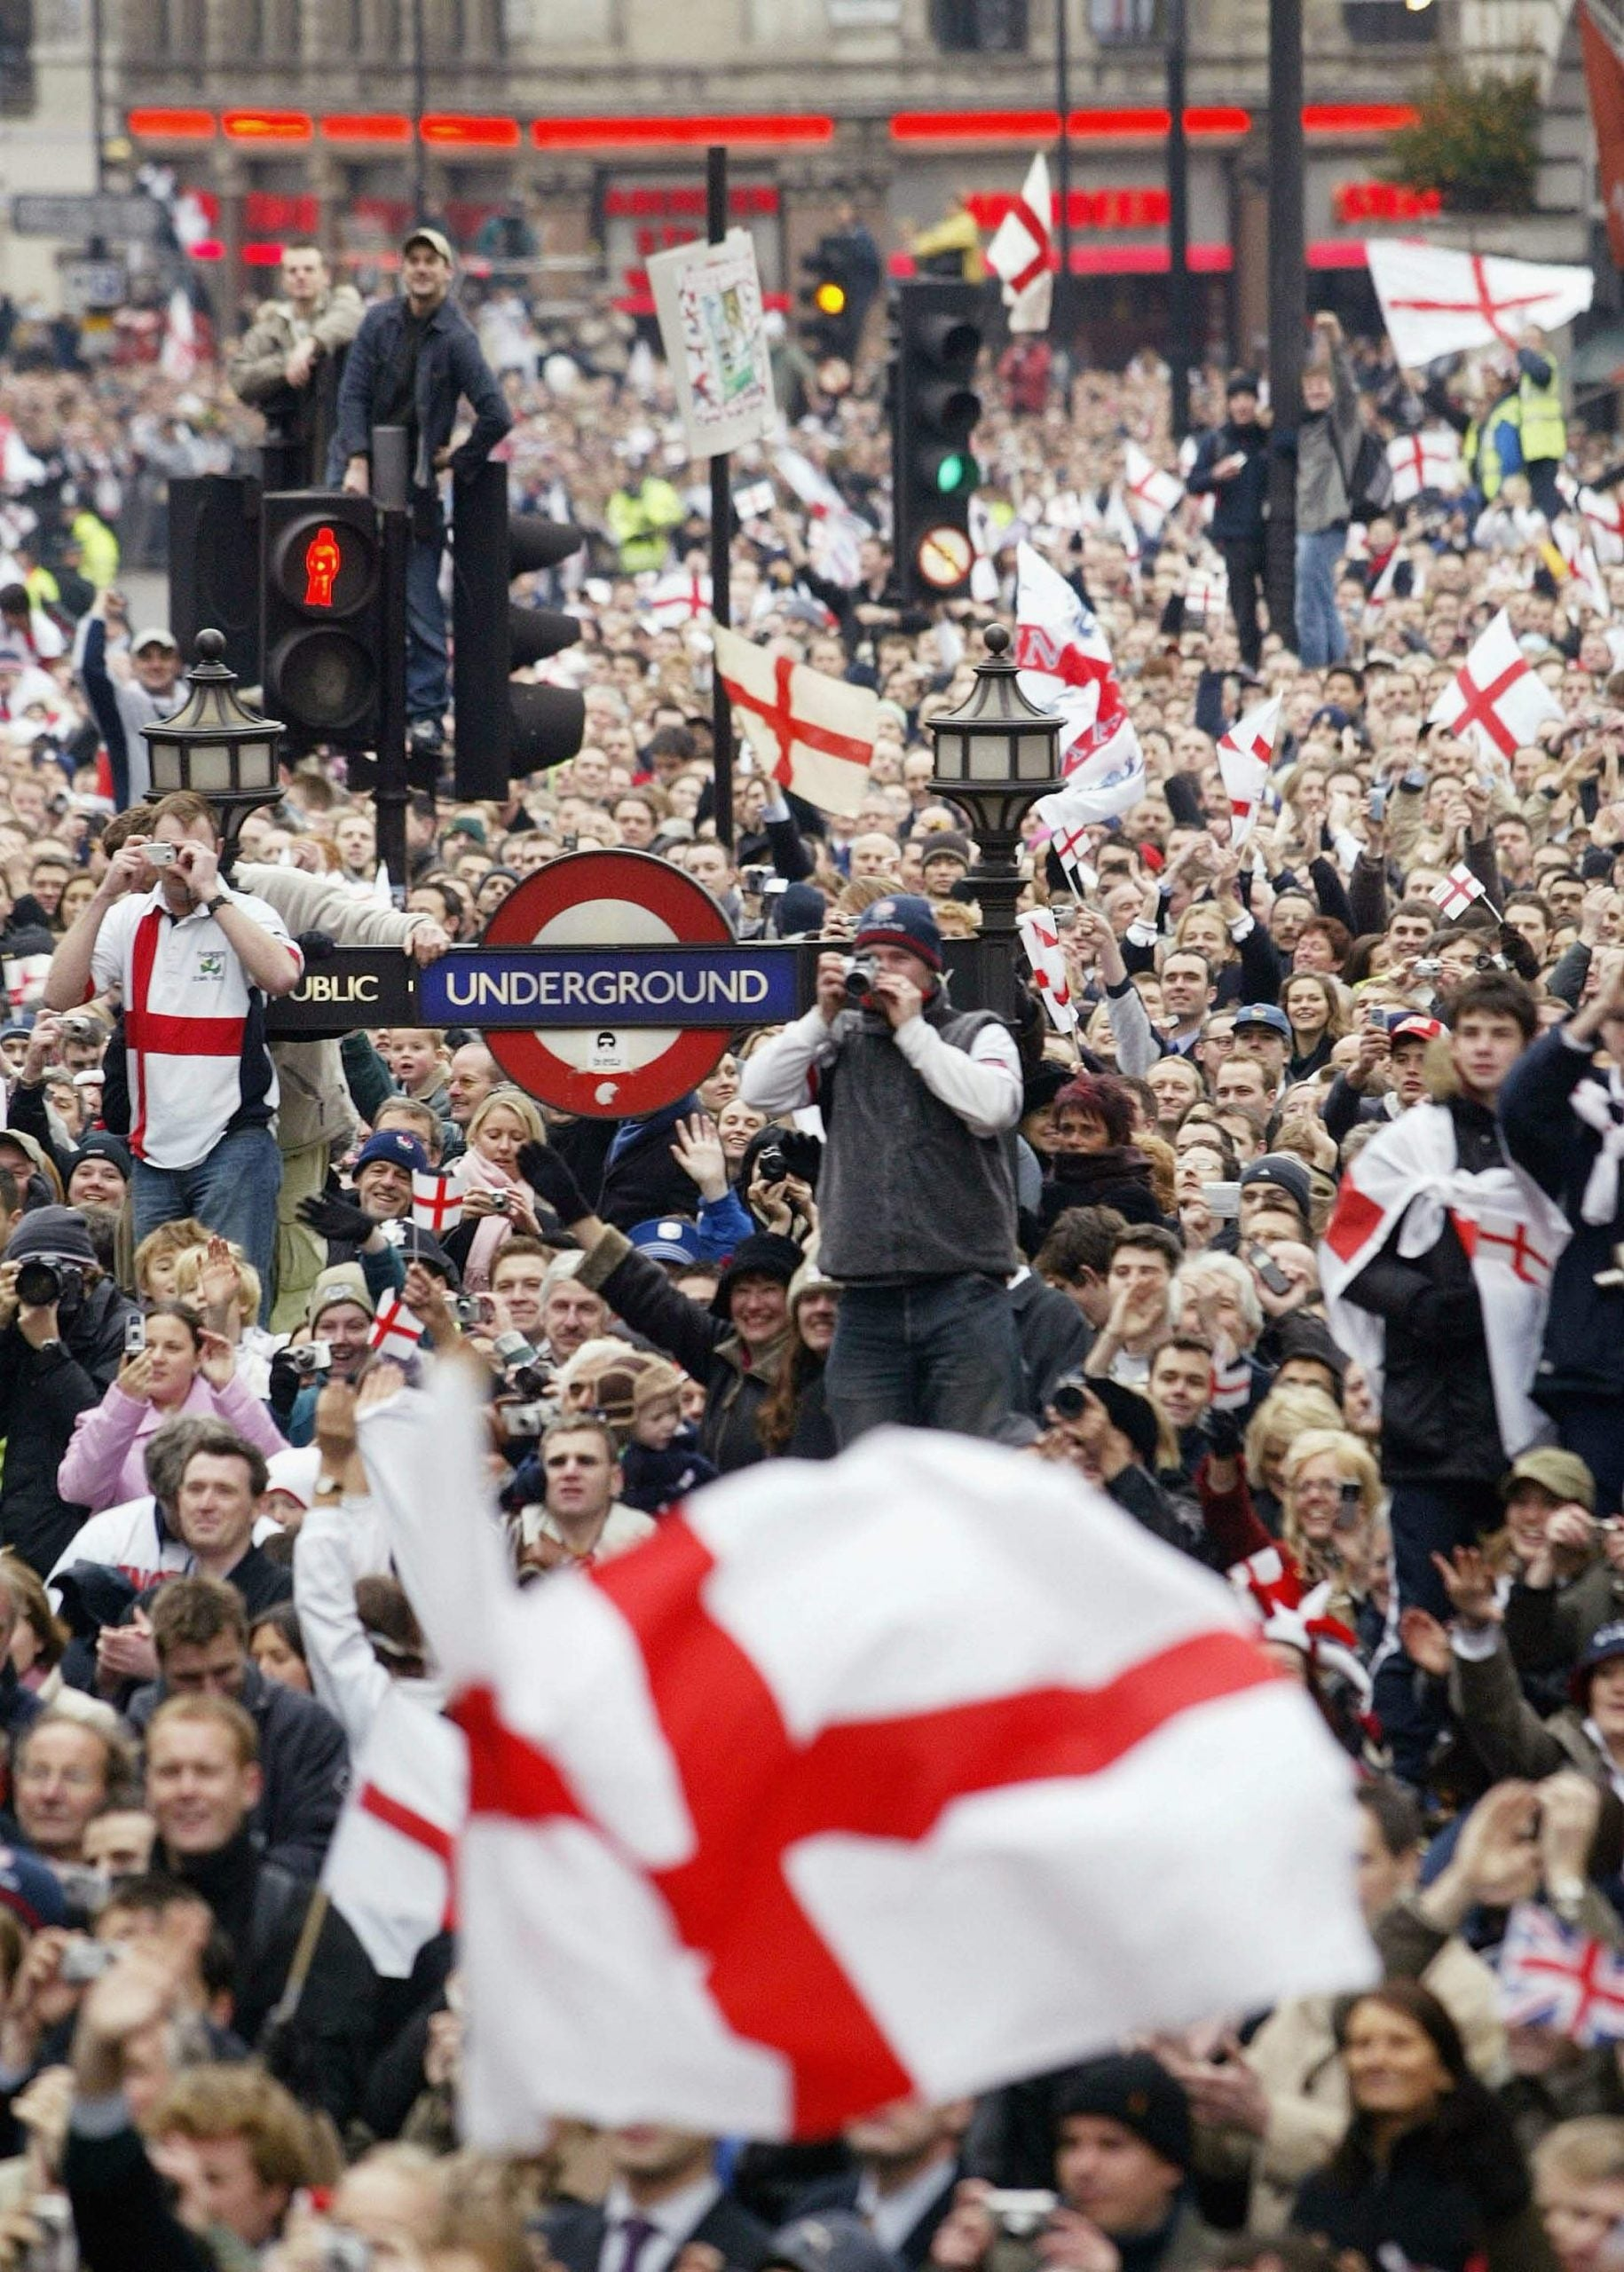 Do you see yourself as British or English? The answer could help define modern politics